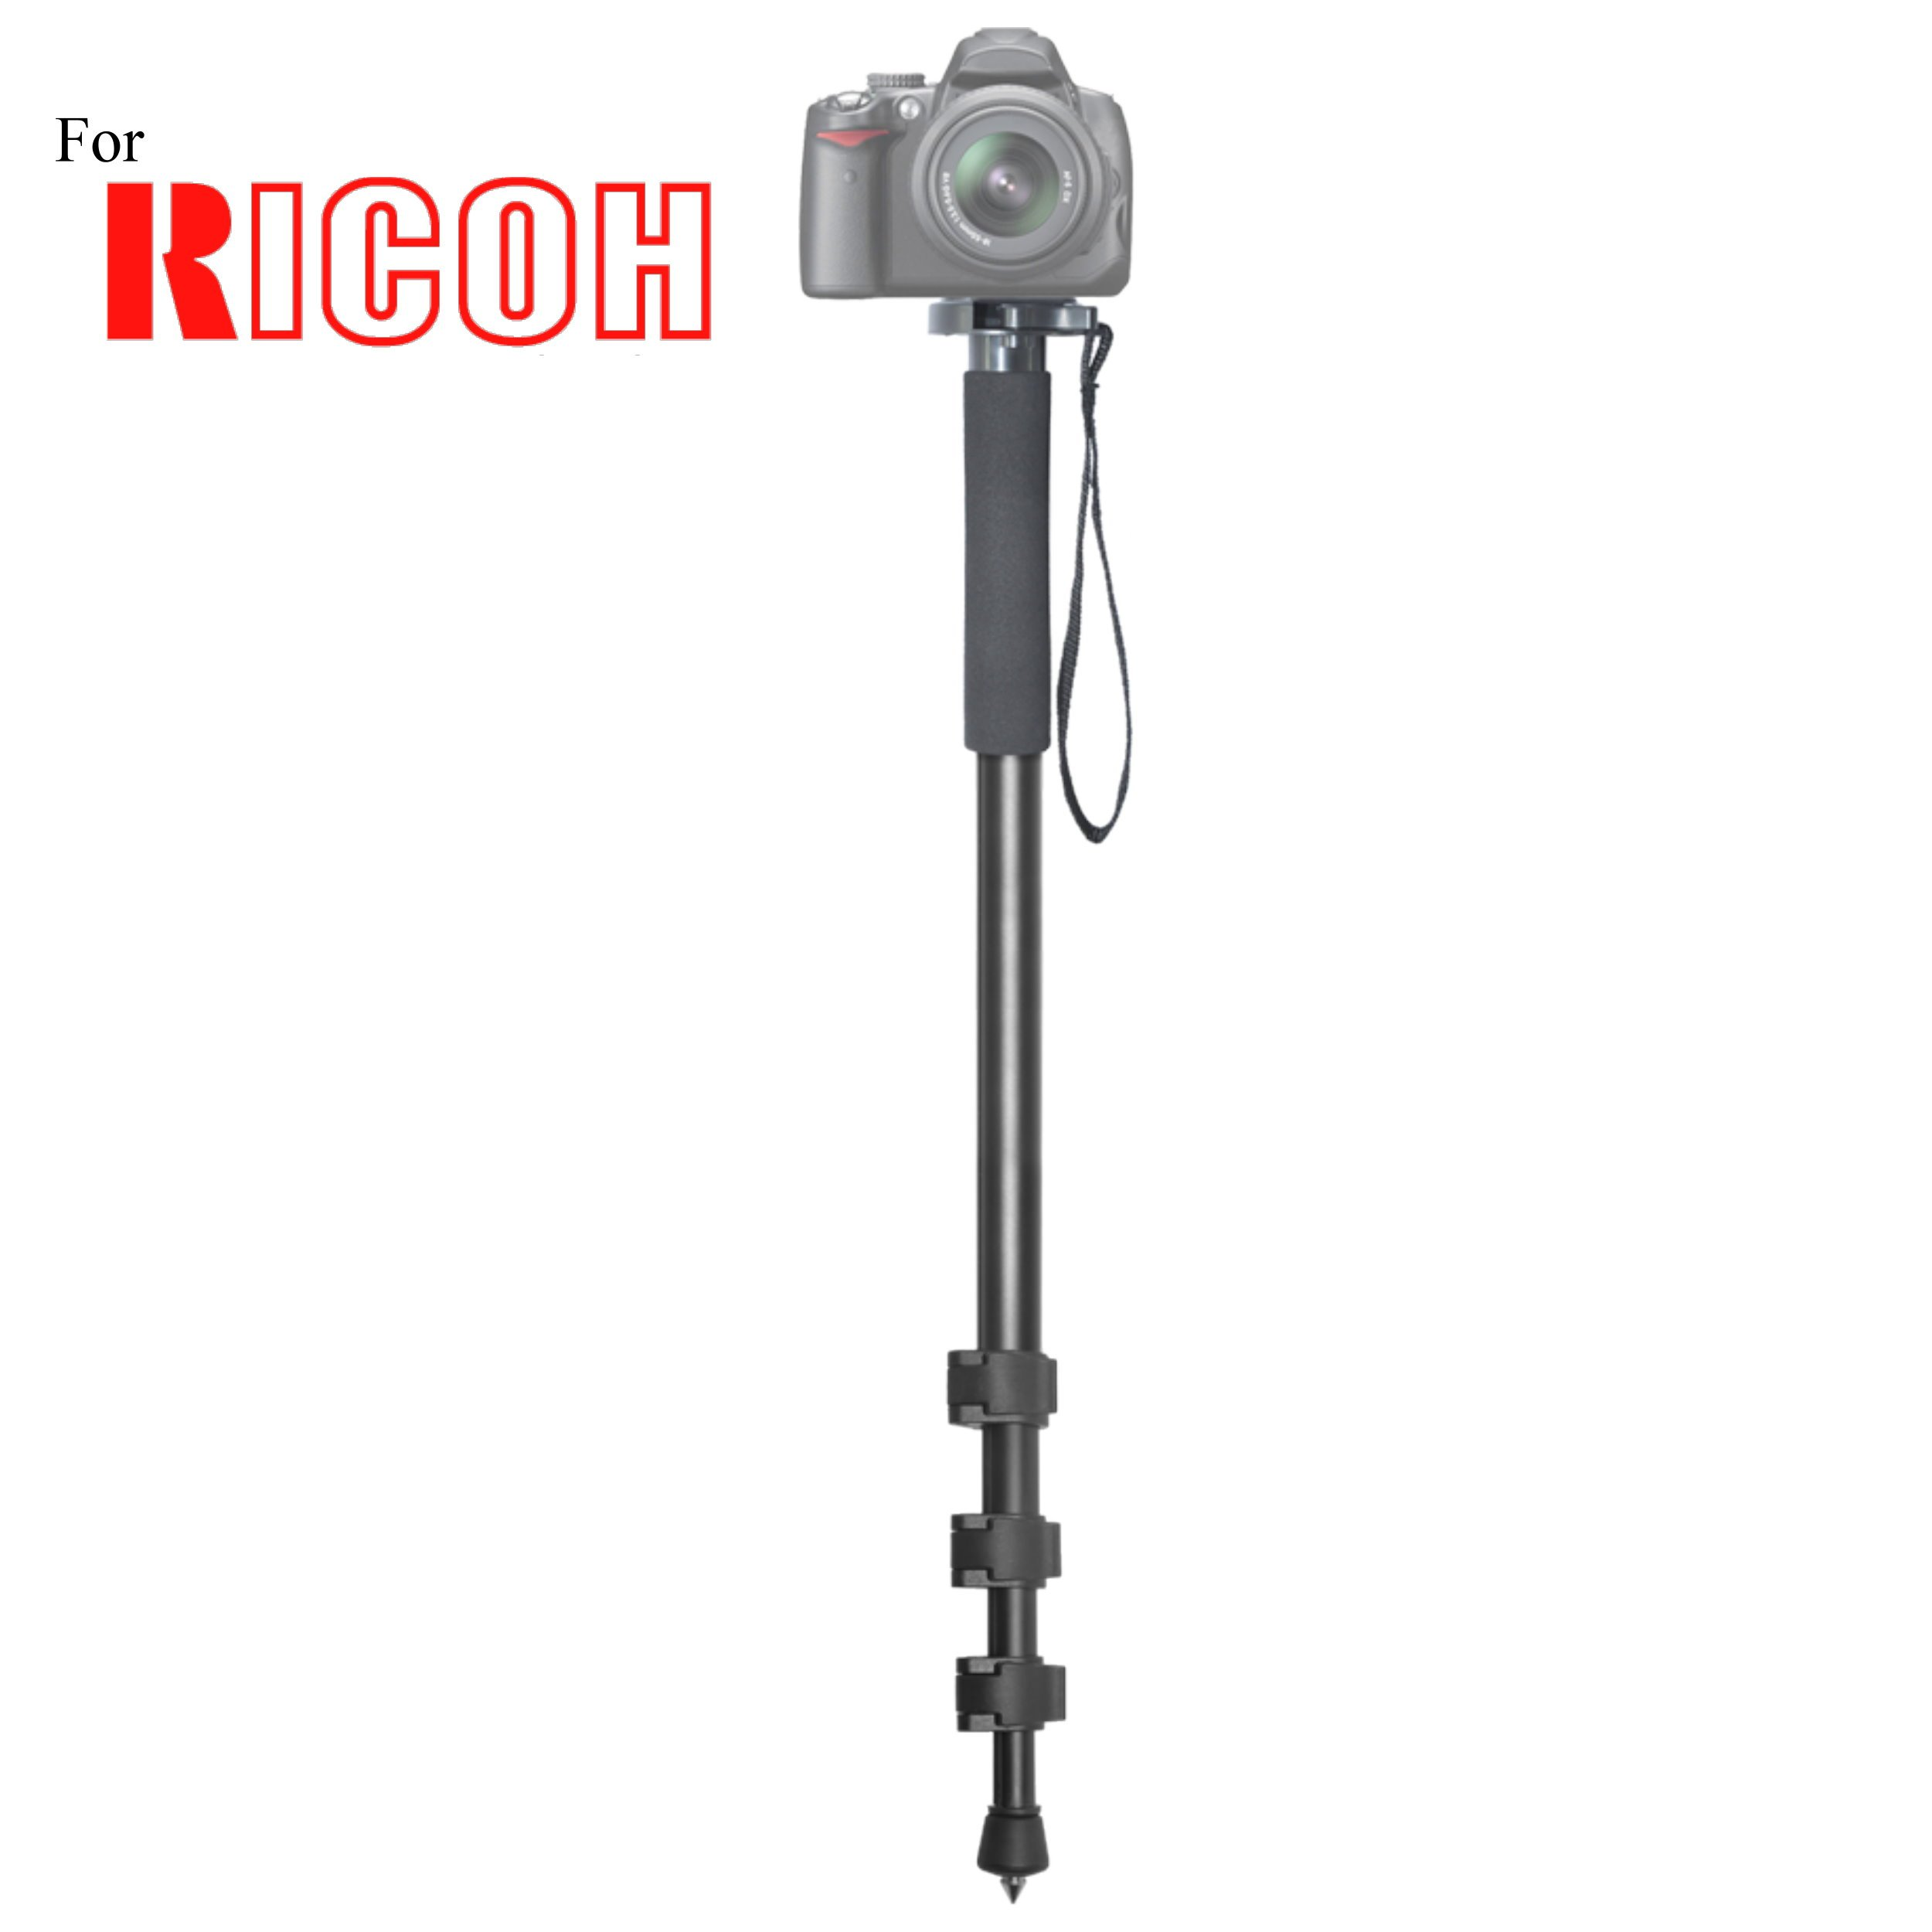 Versatile 72'' Monopod Camera Stick With Quick Release for Ricoh GR Digital II, GR Digital III, GR Digital IV, GR II, GXR A12 50mm F2.5 Macro, GXR A16 24-85mm Digital Cameras: Collapsible Mono pod